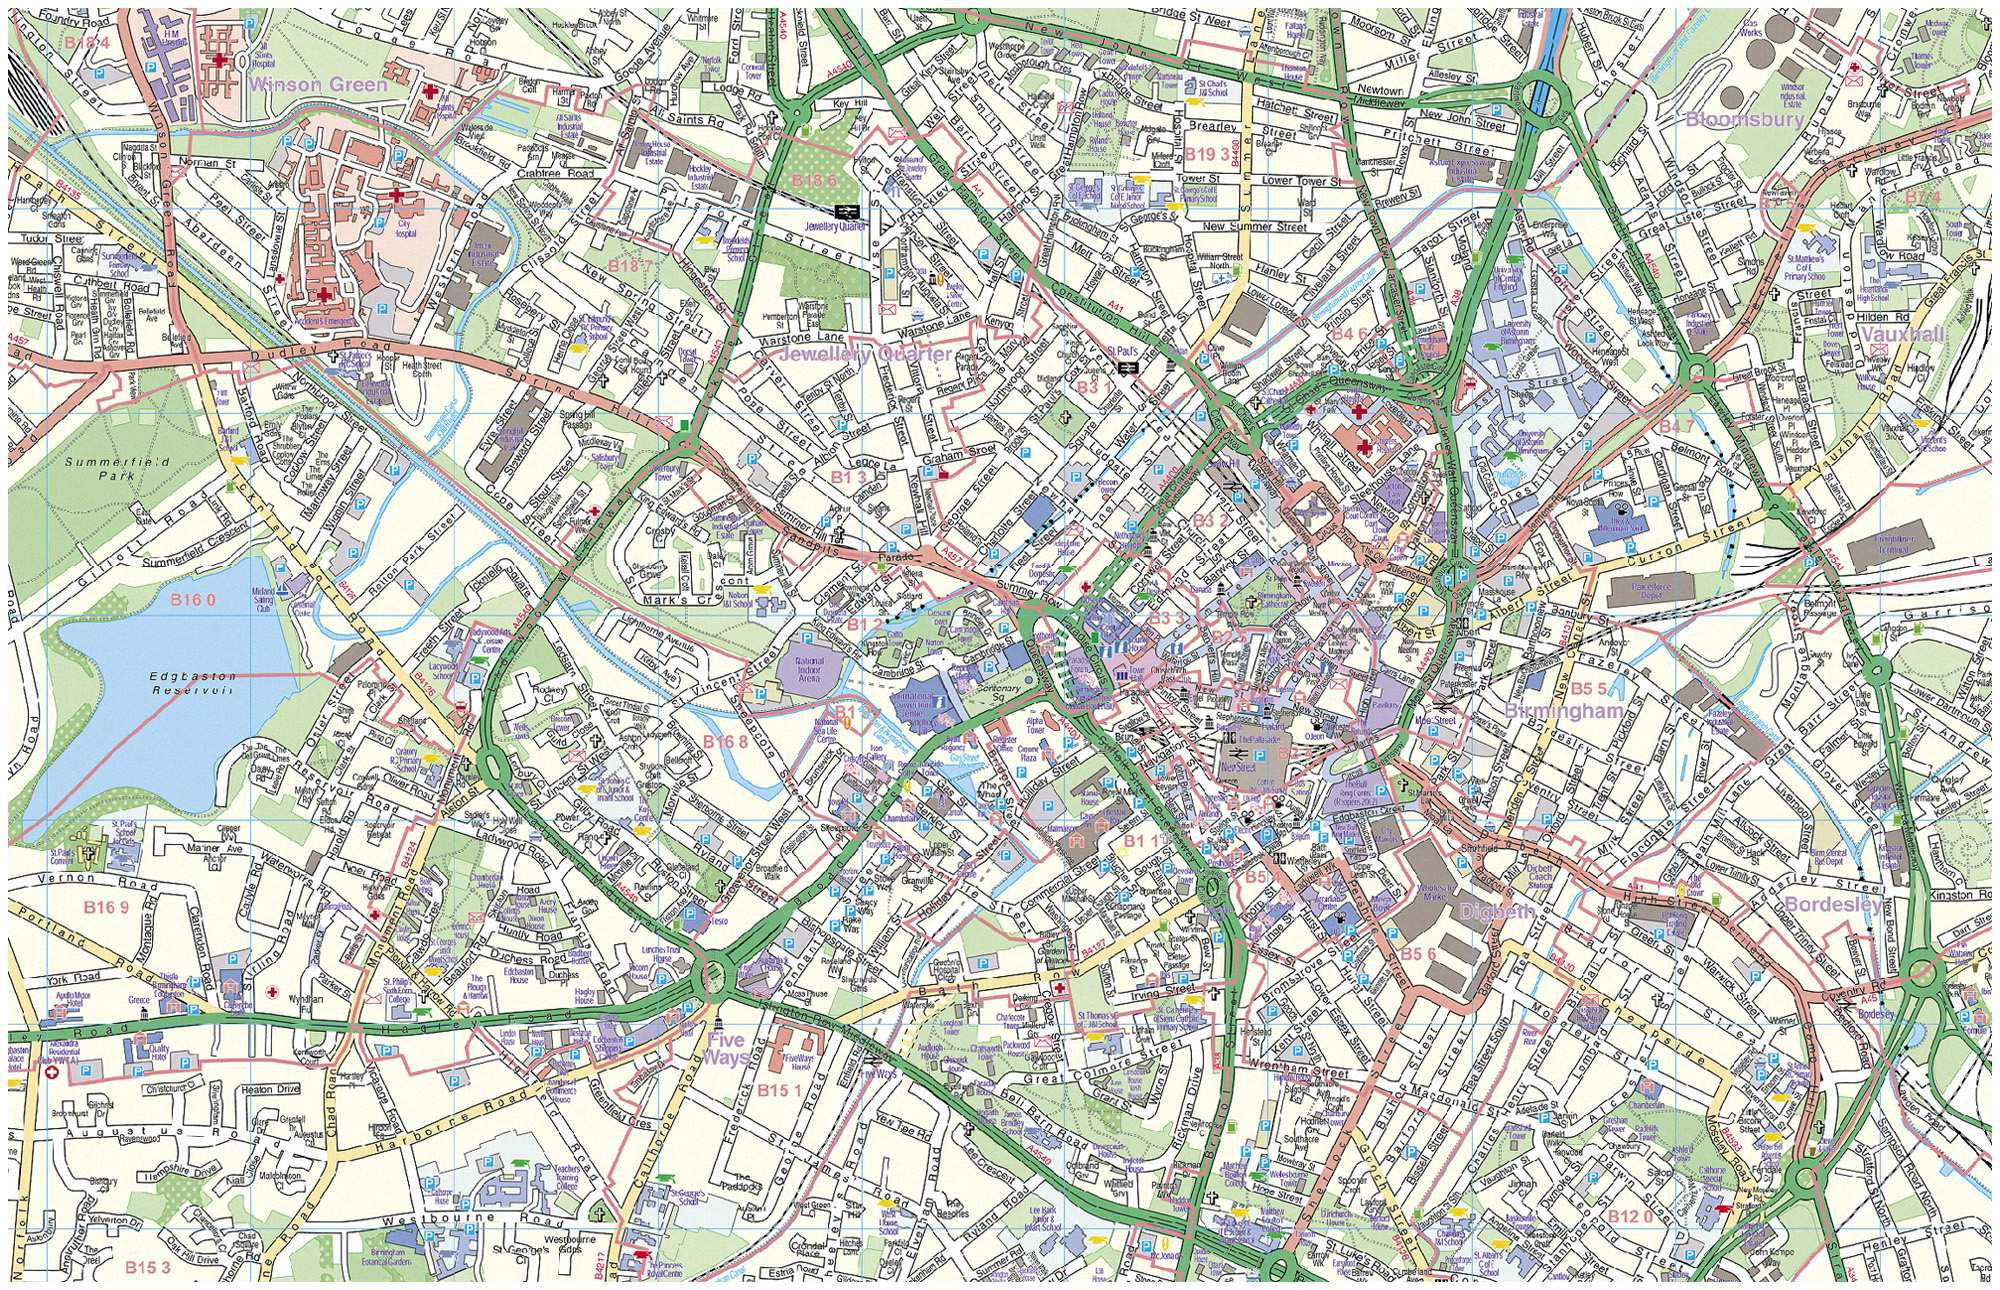 Birmingham Street Map Large Birmingham Maps for Free Download and Print | High  Birmingham Street Map